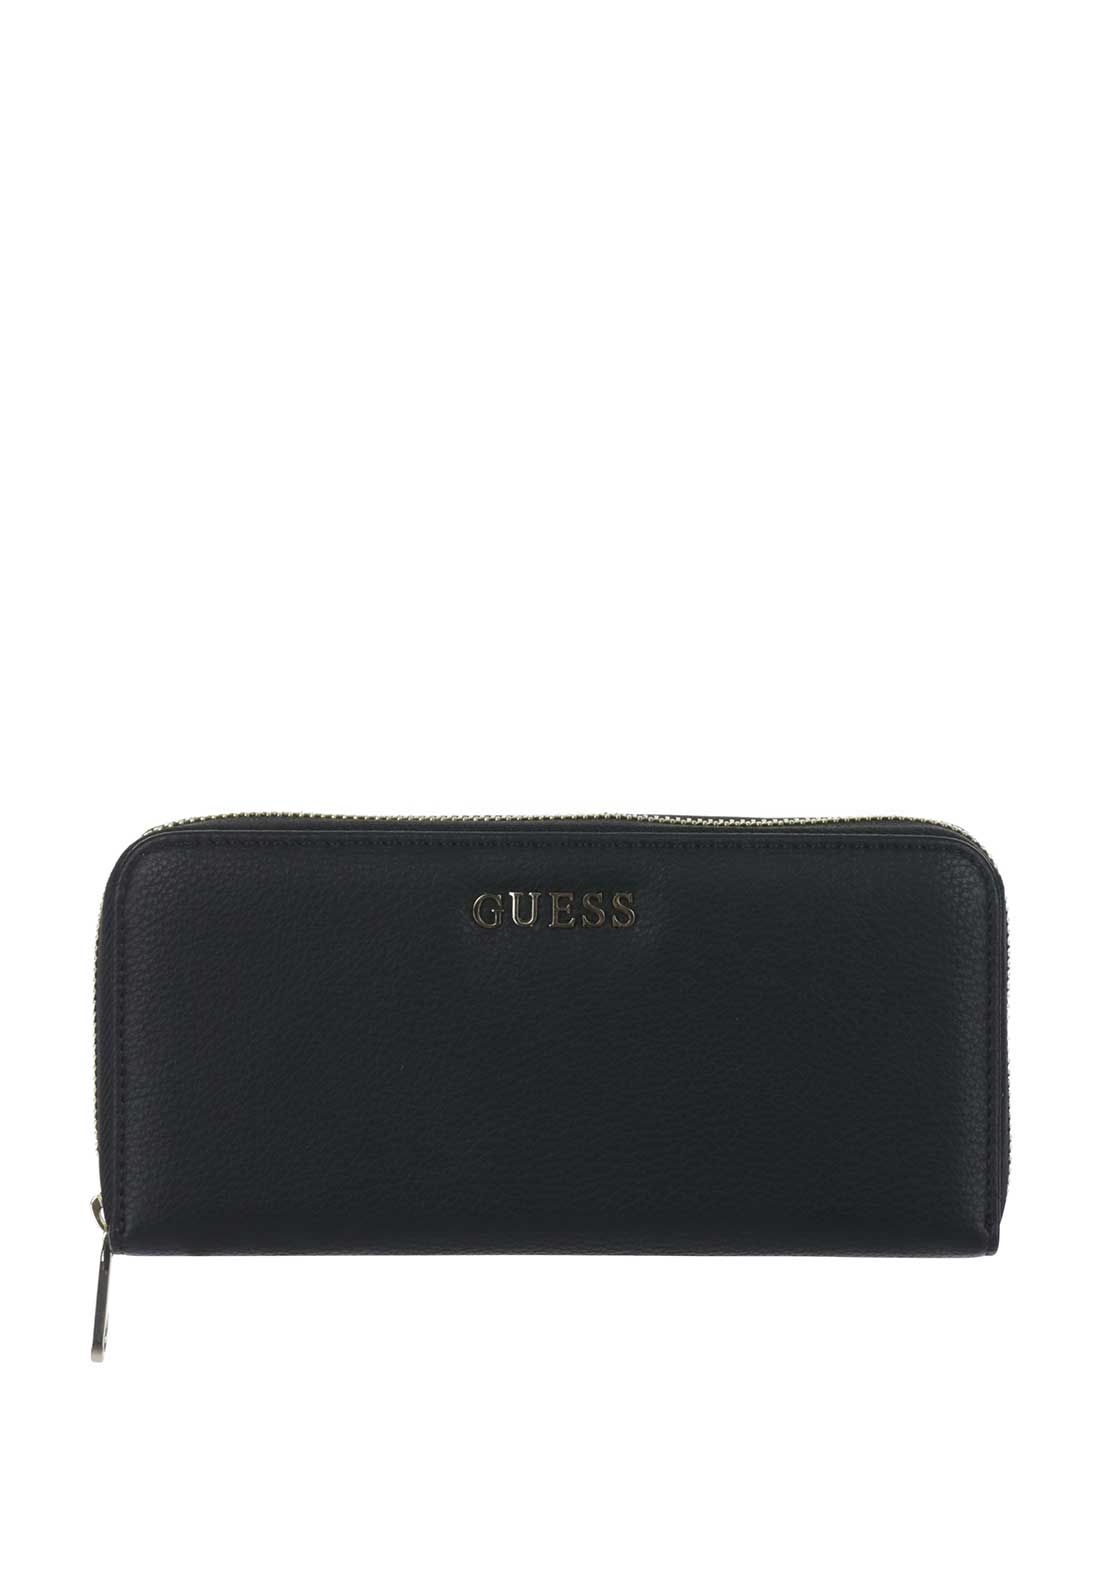 Guess Small Zip around Purse, Black